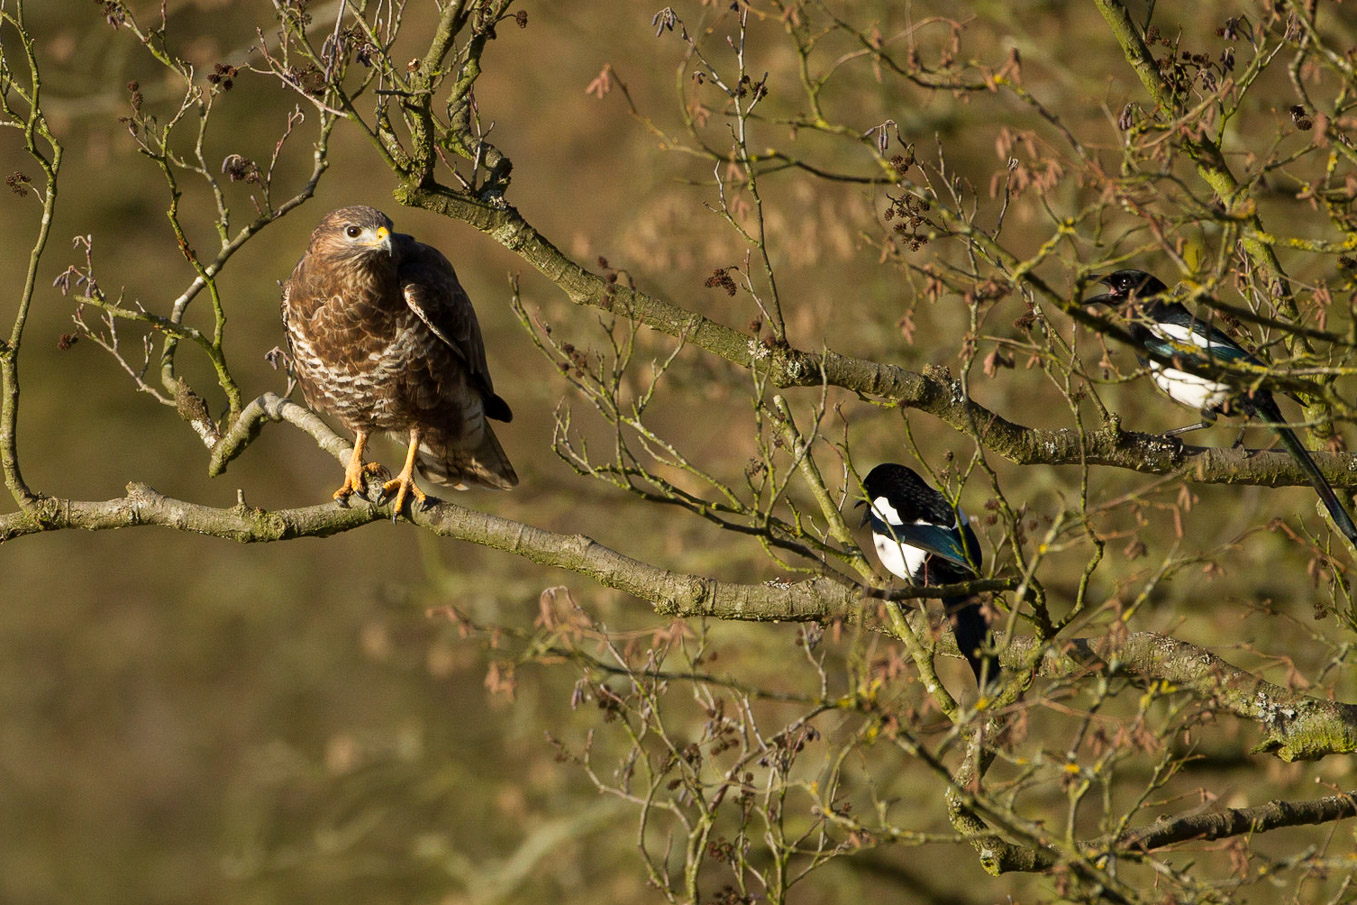 Buzzard And Magpies